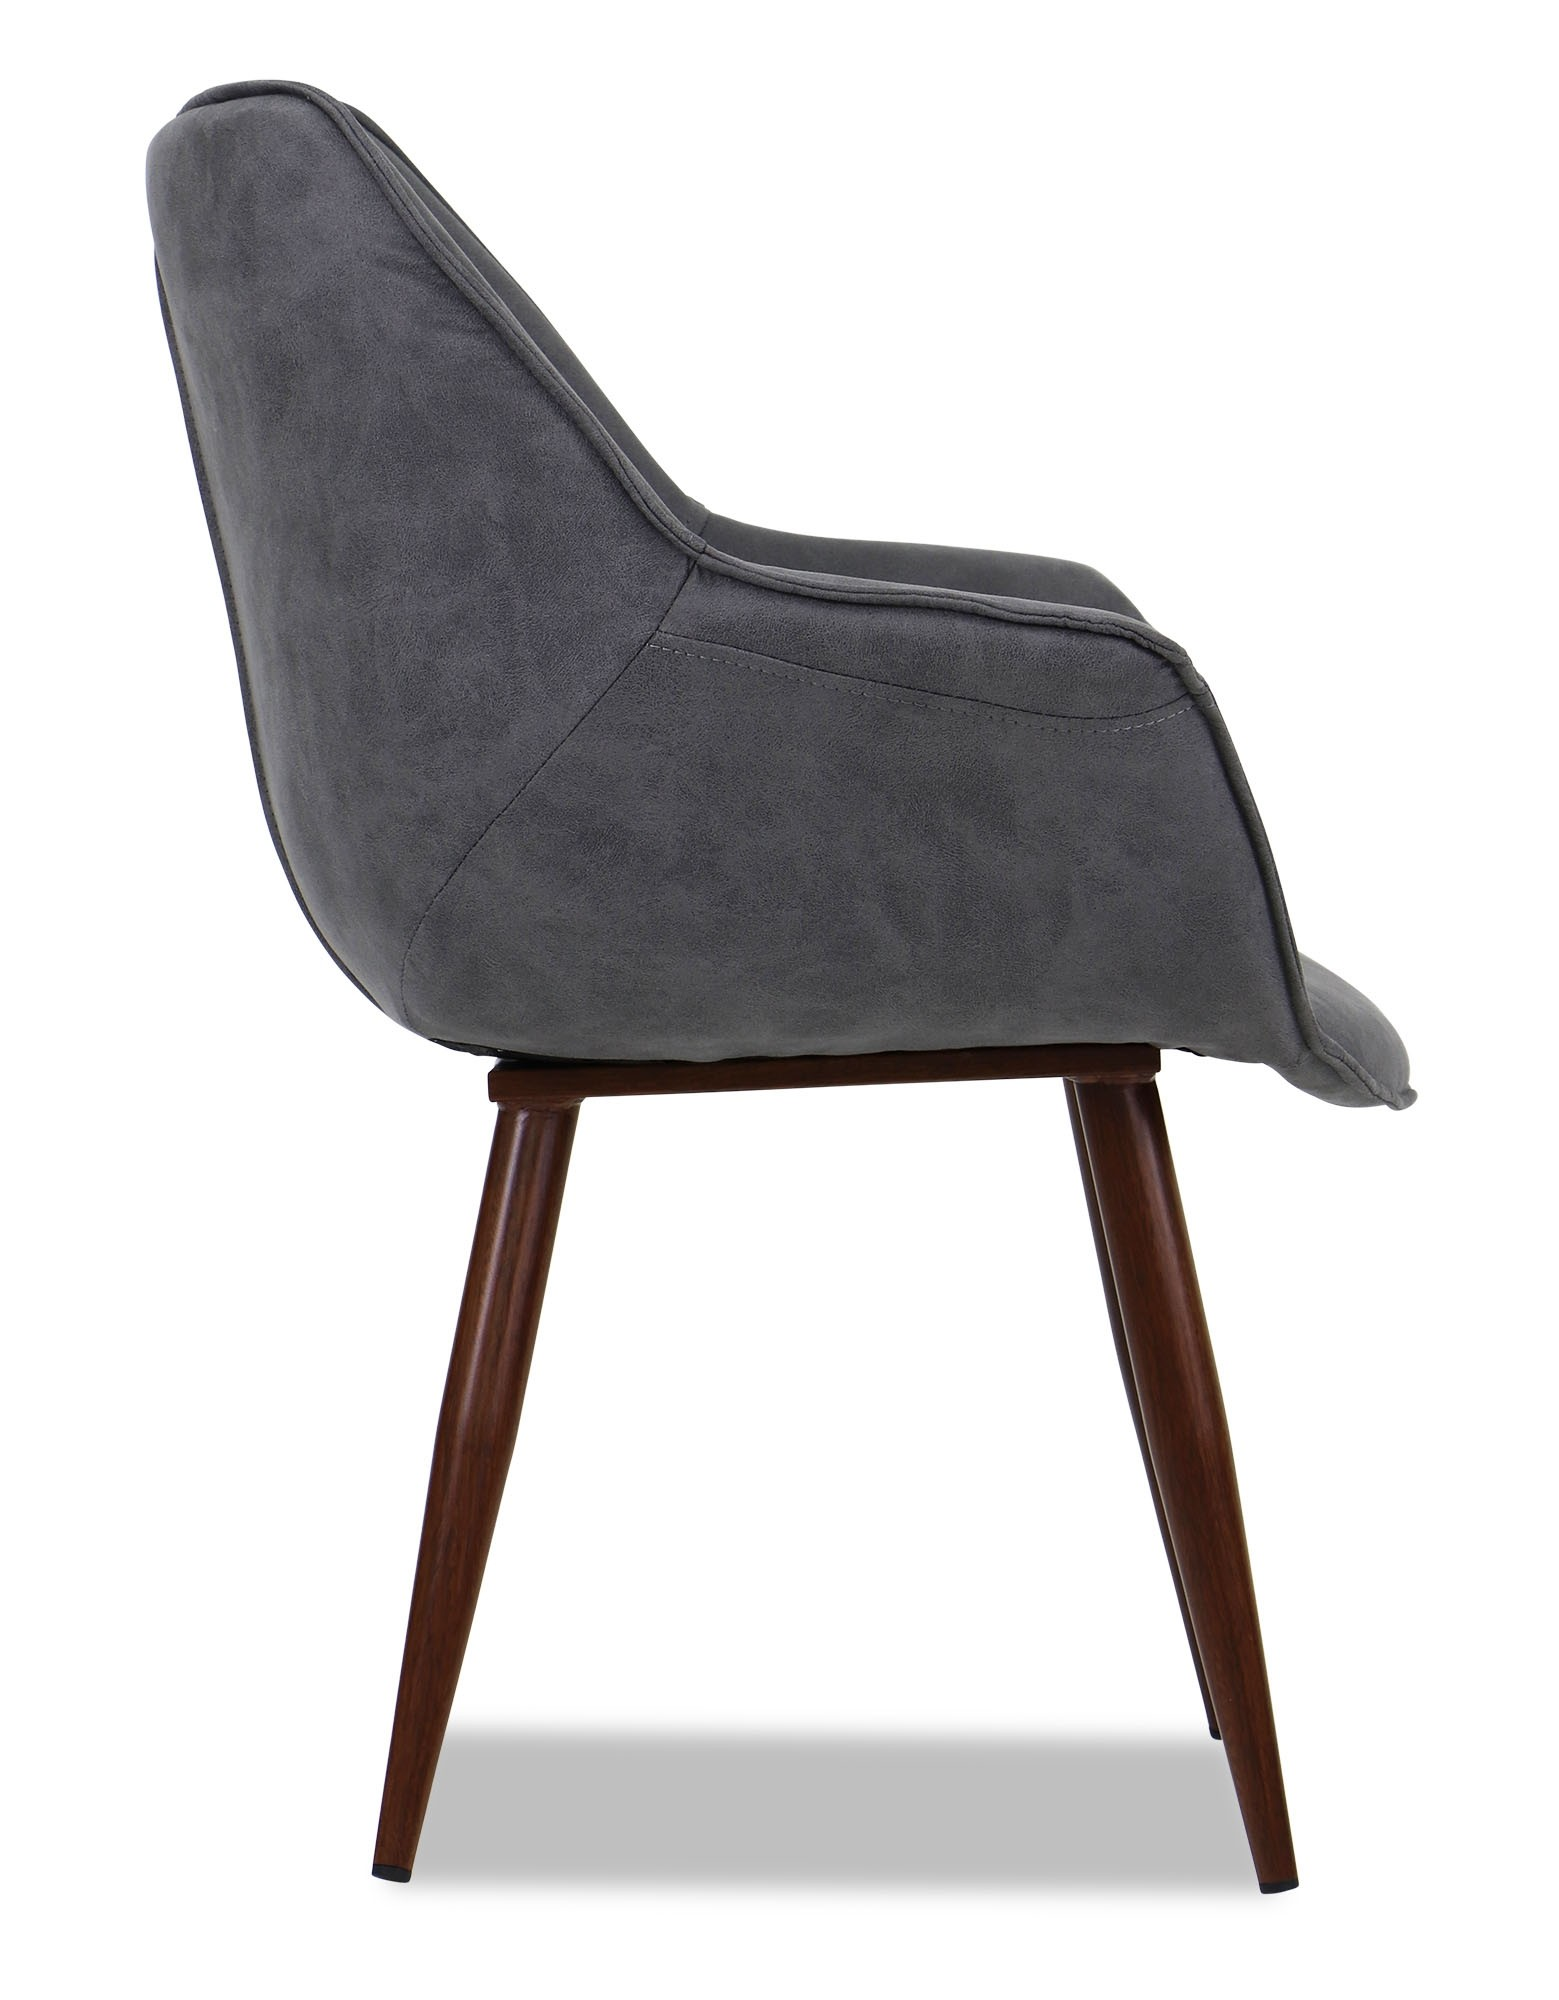 Els Chair In Grey Chairs Seating Furniture Living